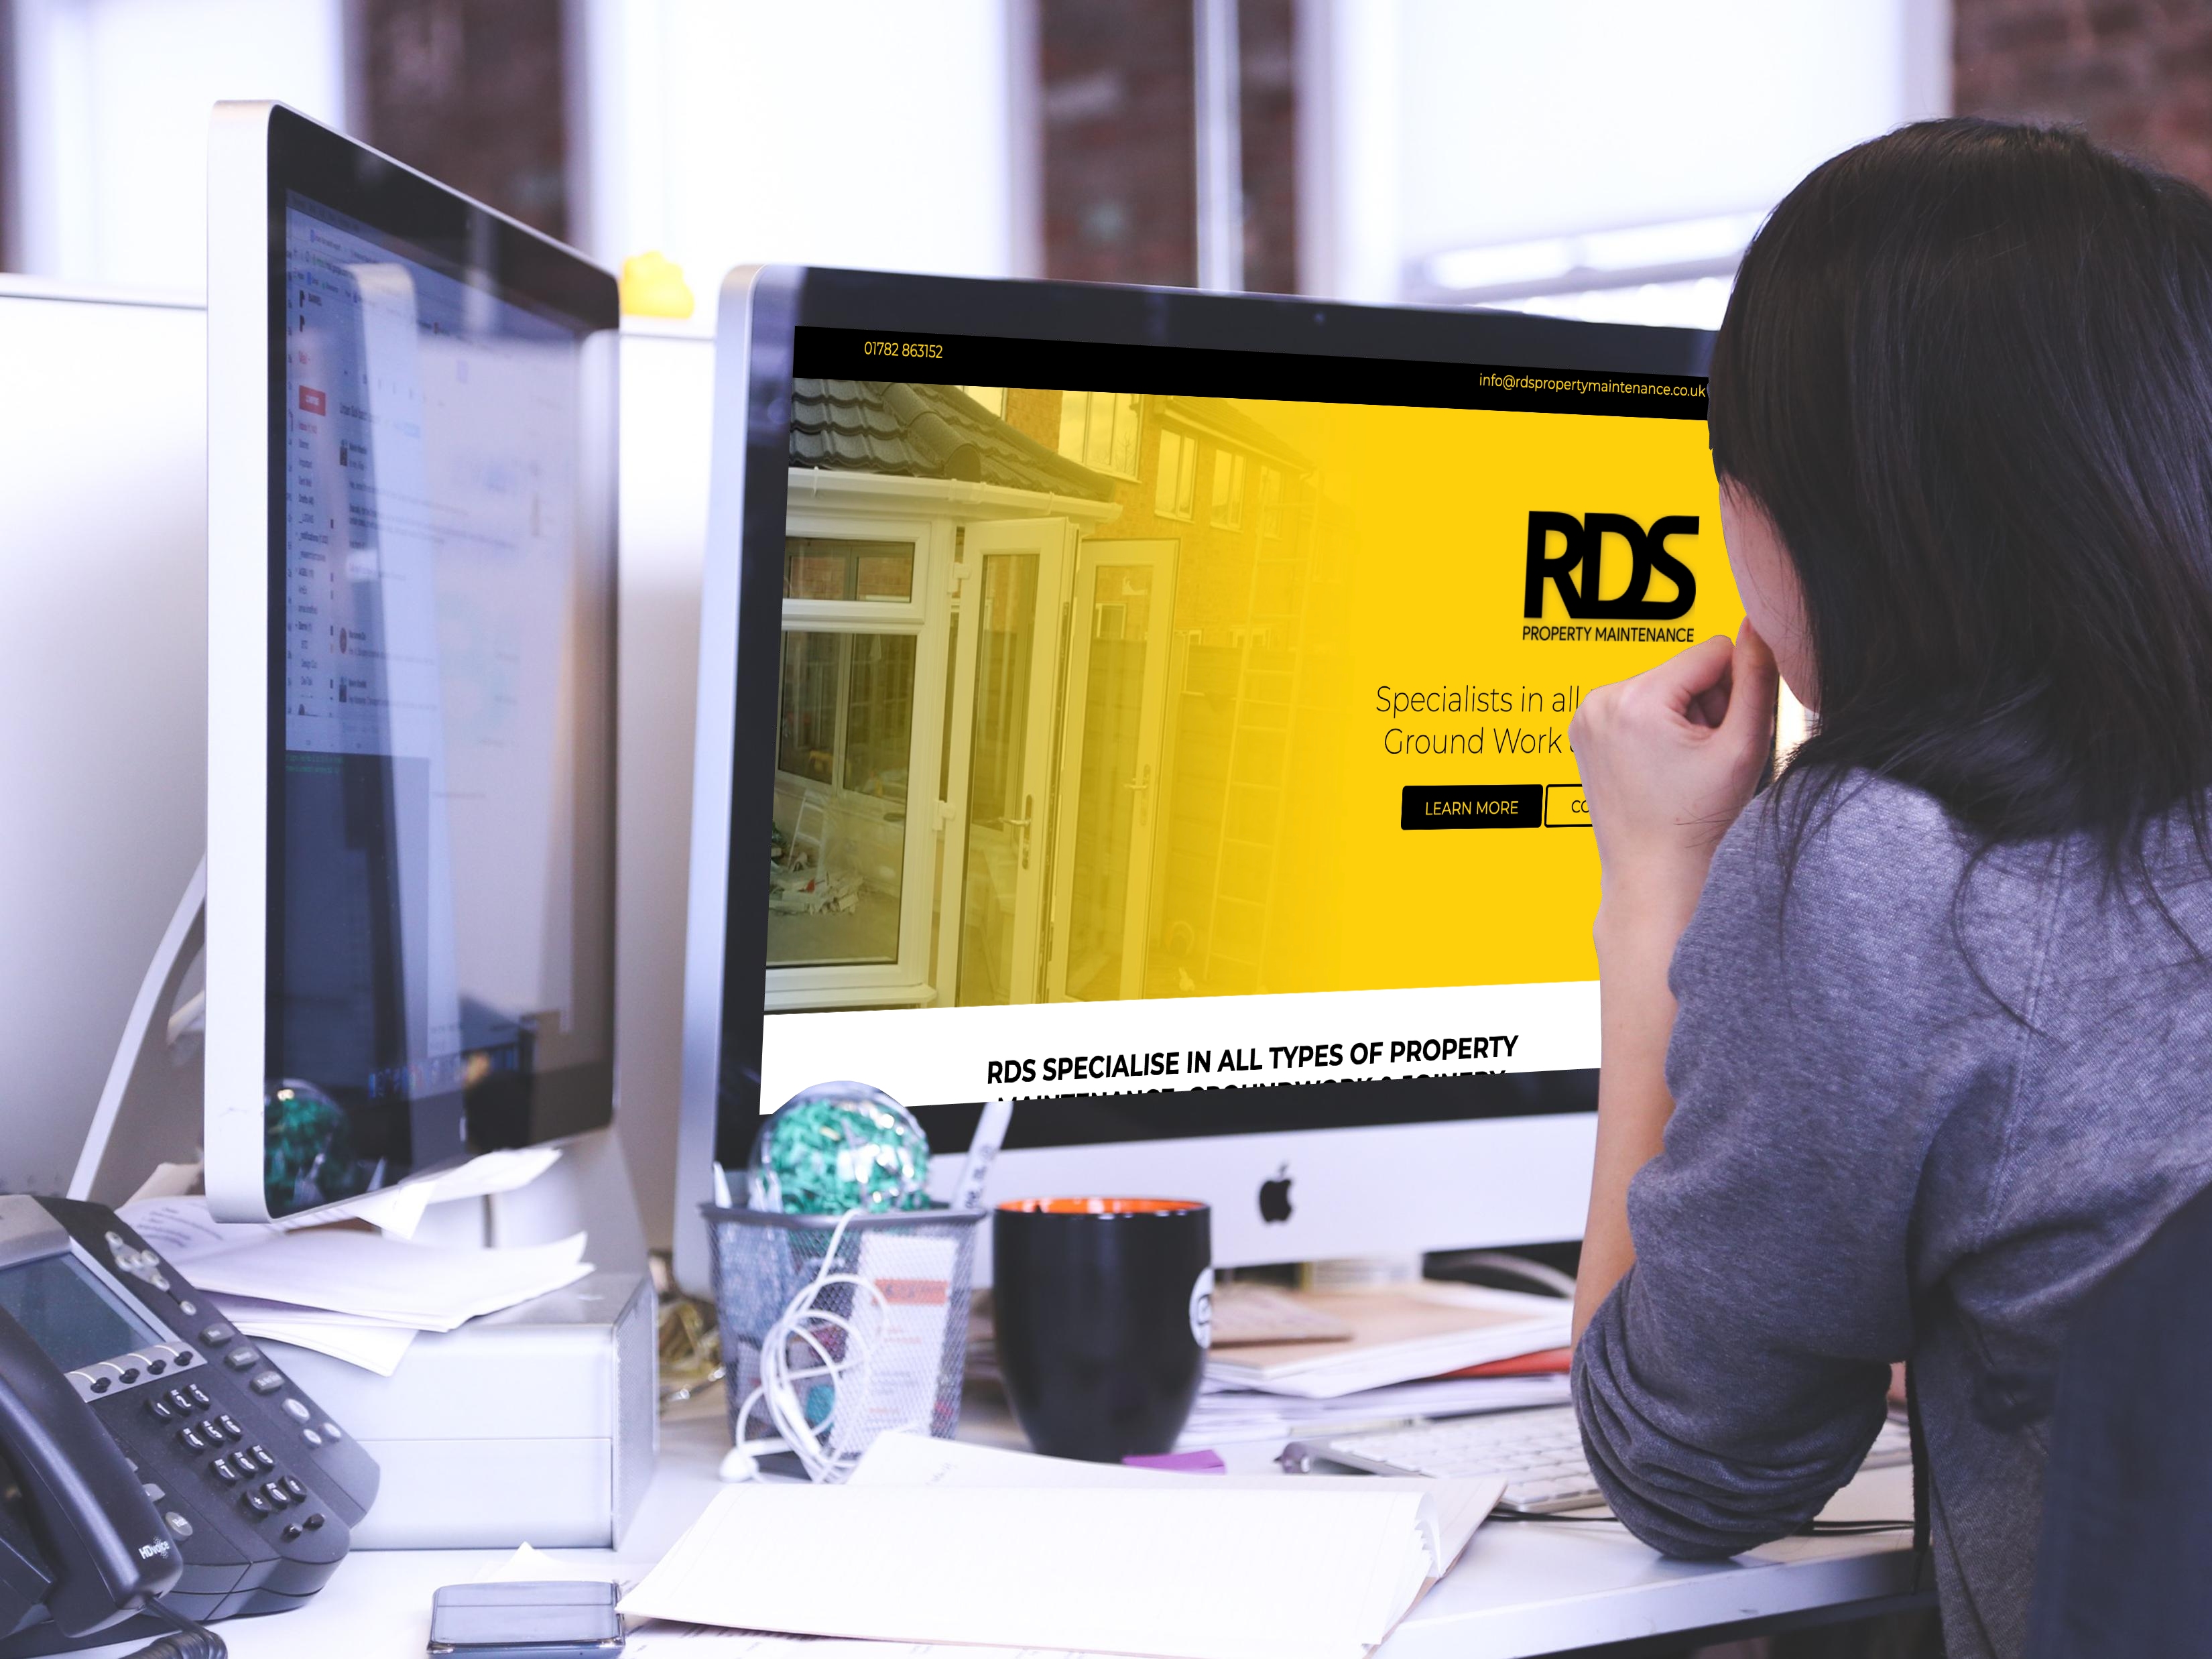 Photo of MJL Digital's work completed for RDS Property Maintenance